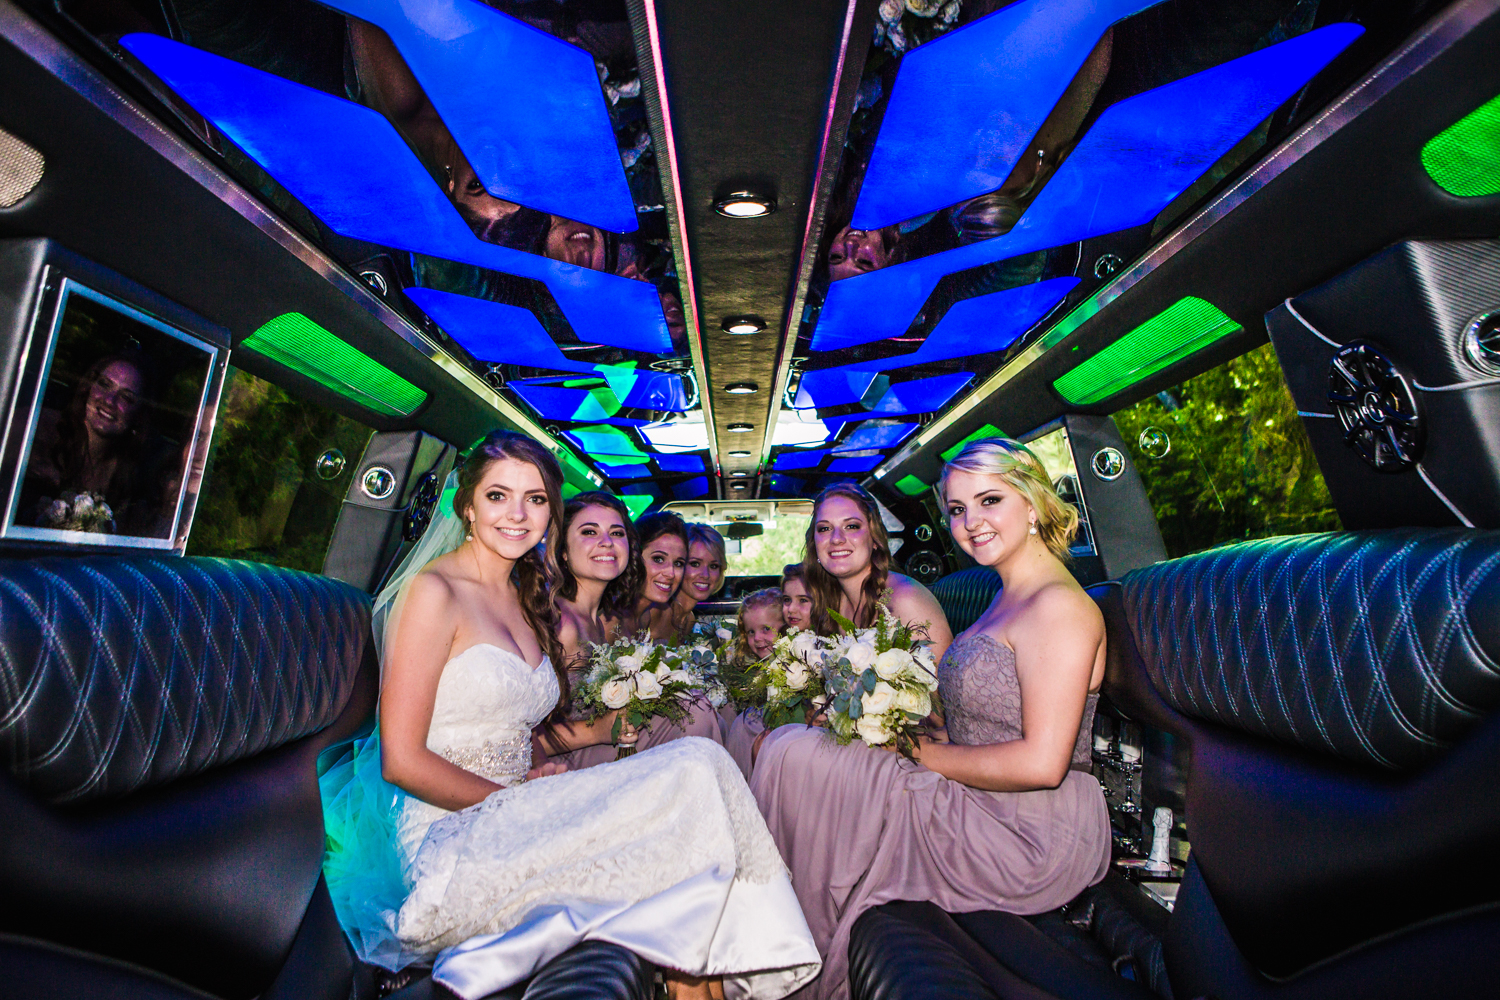 Bridal Party inside a stretch Hummer limo. Photographed by JMGant Photography